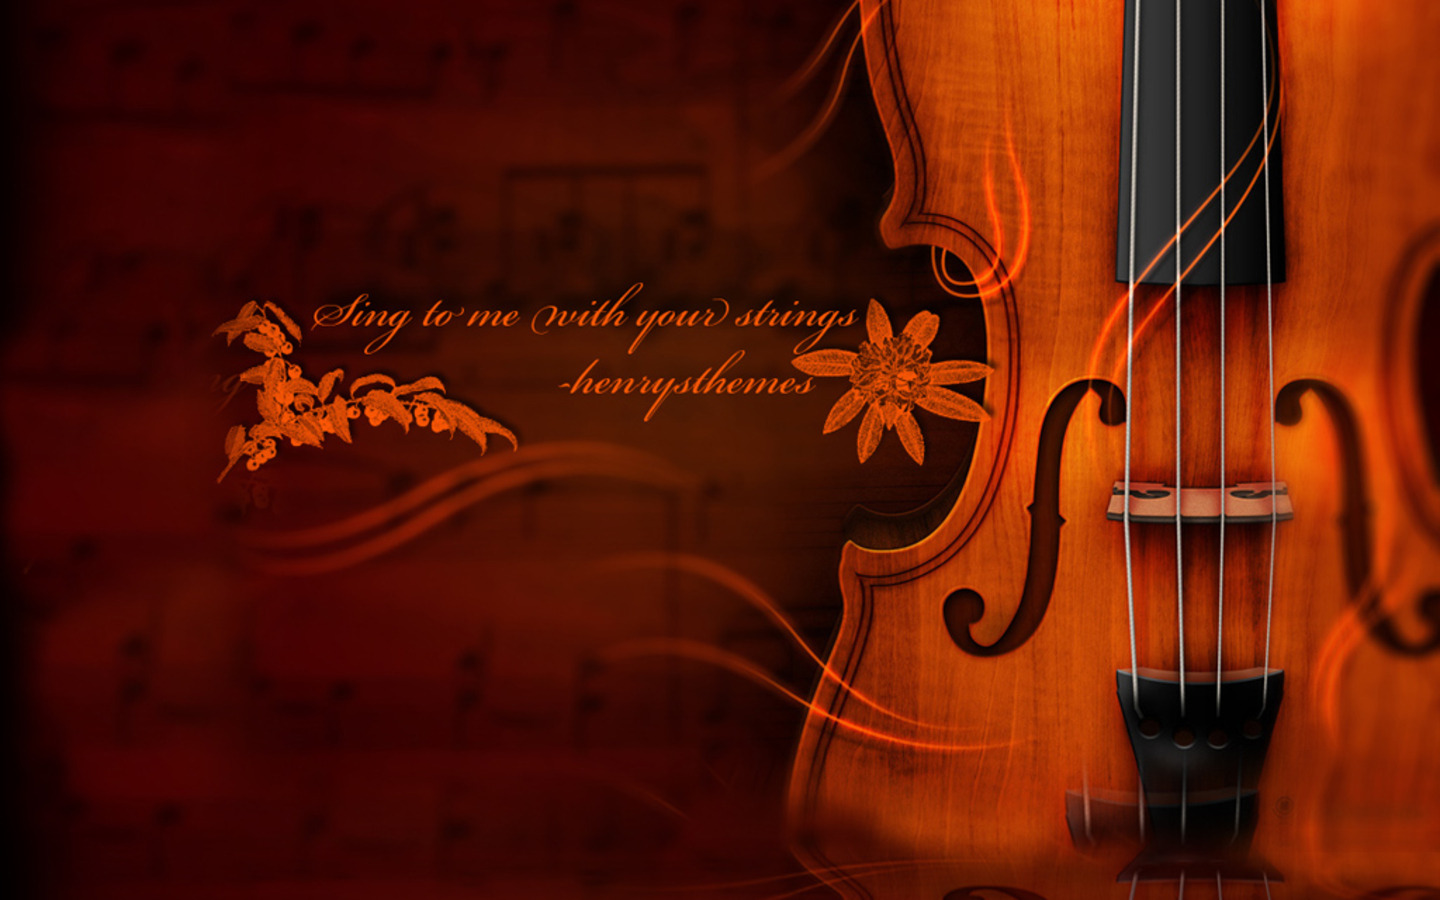 Music Images Violin Hd Wallpaper And Background Photos 31870311